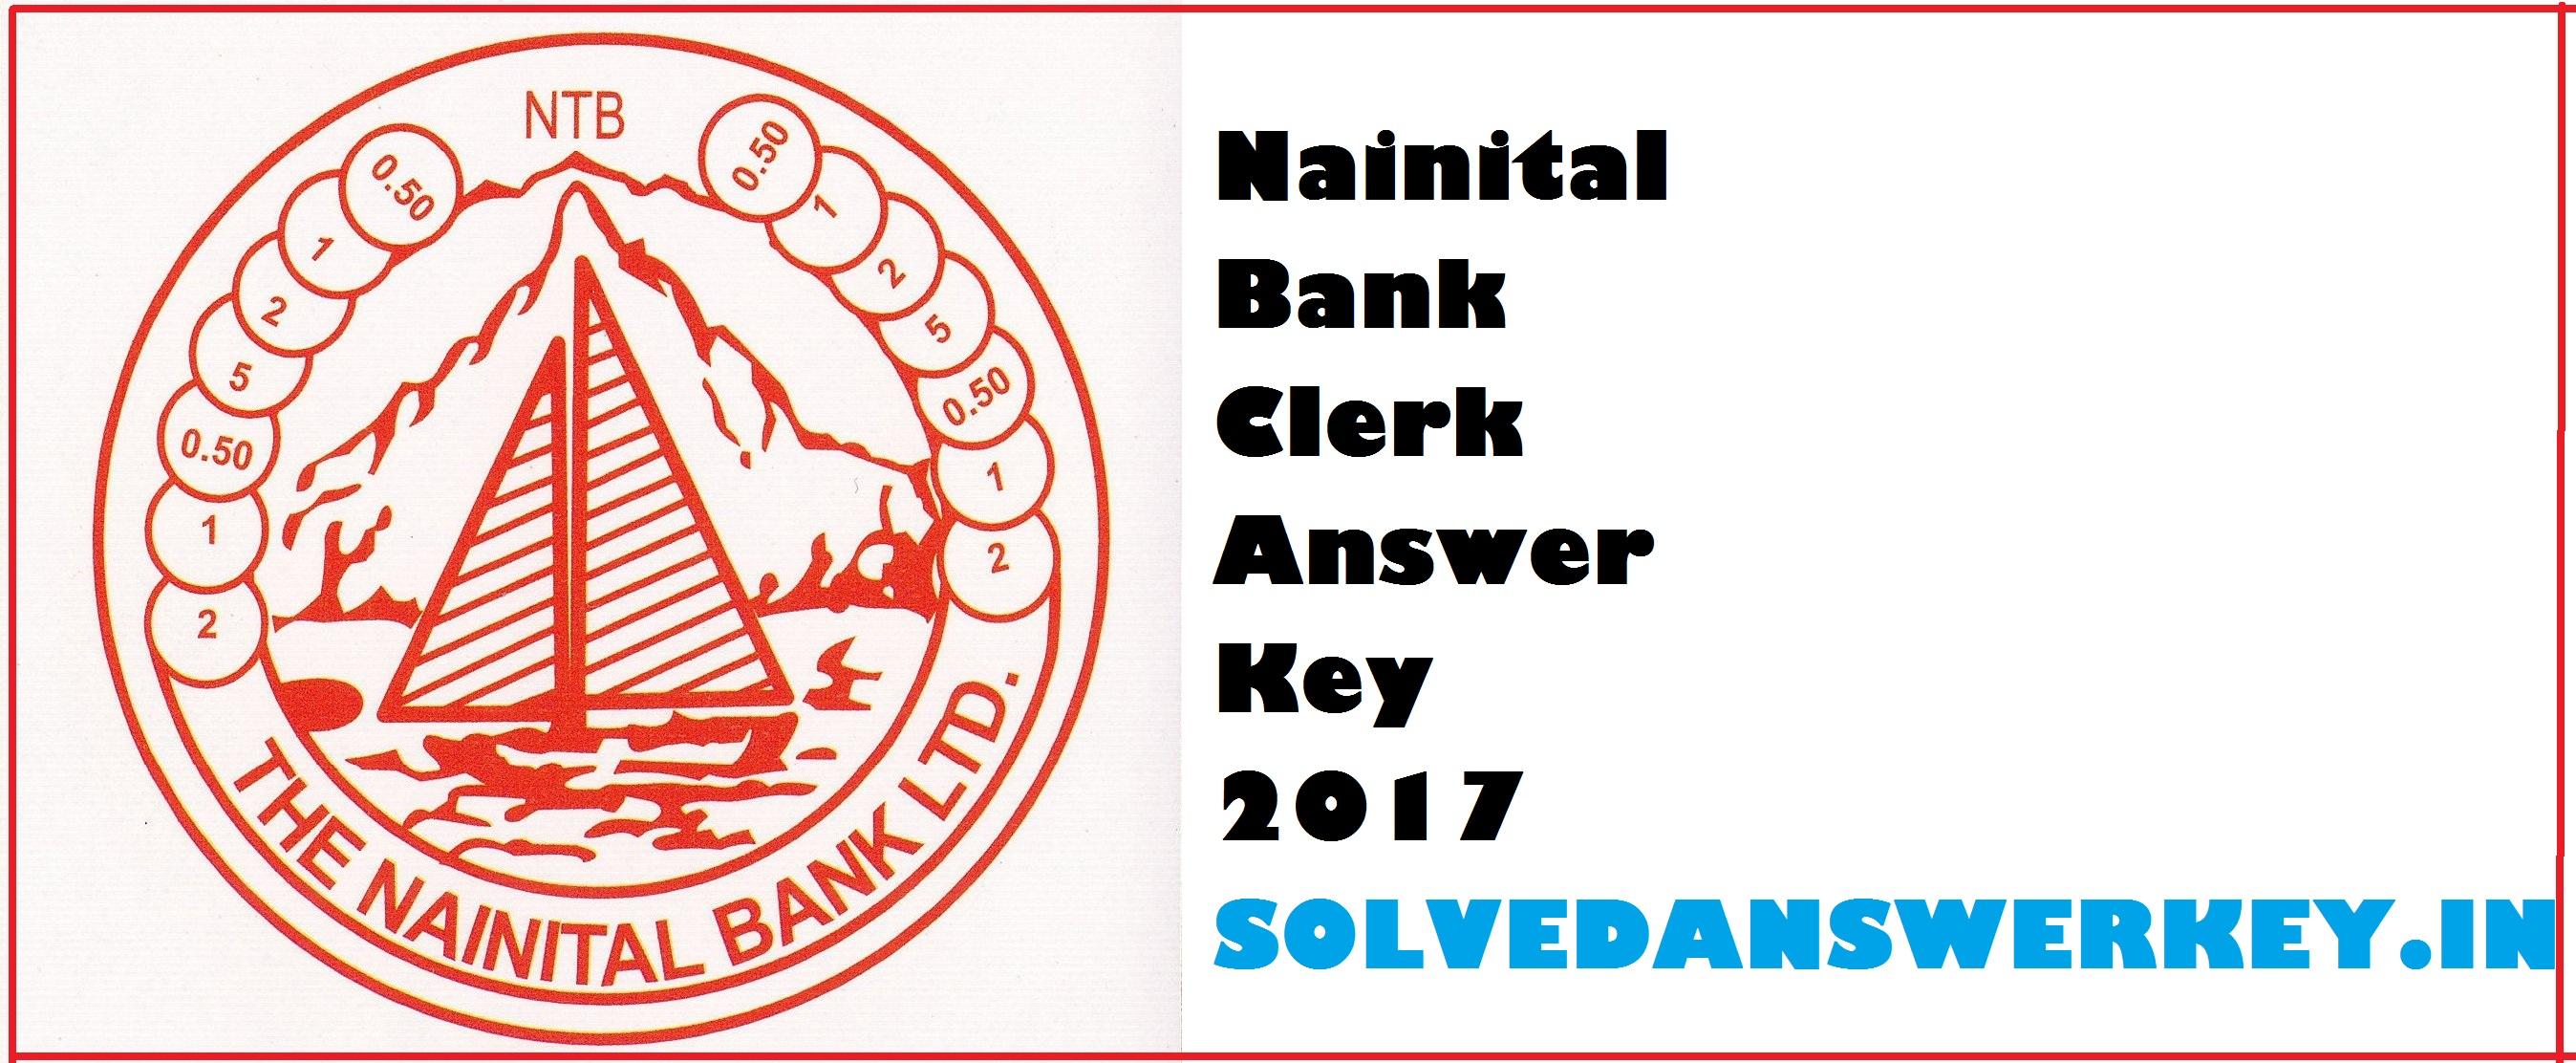 Nainital Bank Clerk Answer Key 2017 PDF